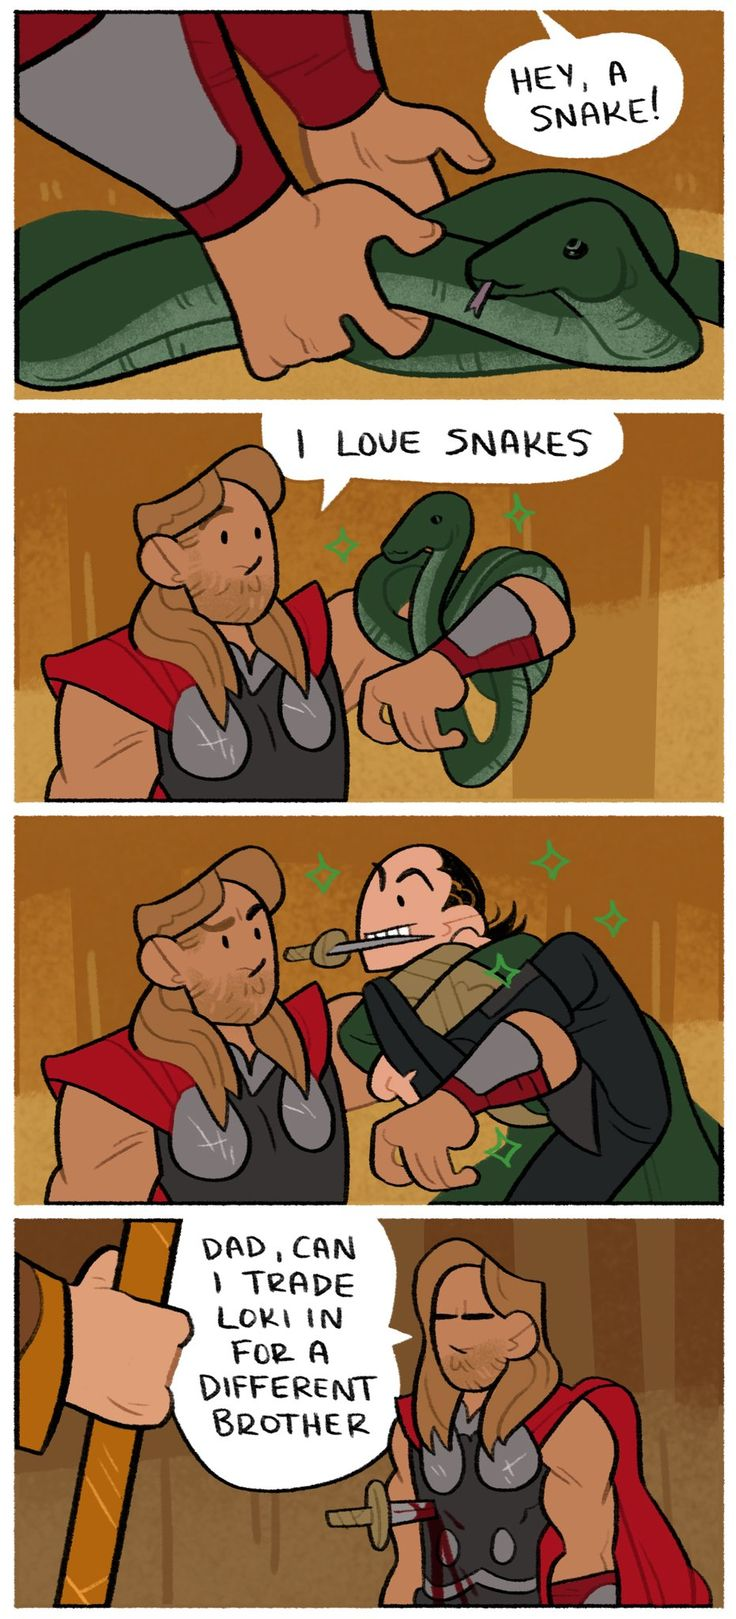 Thor || He ruined snakes forEVER